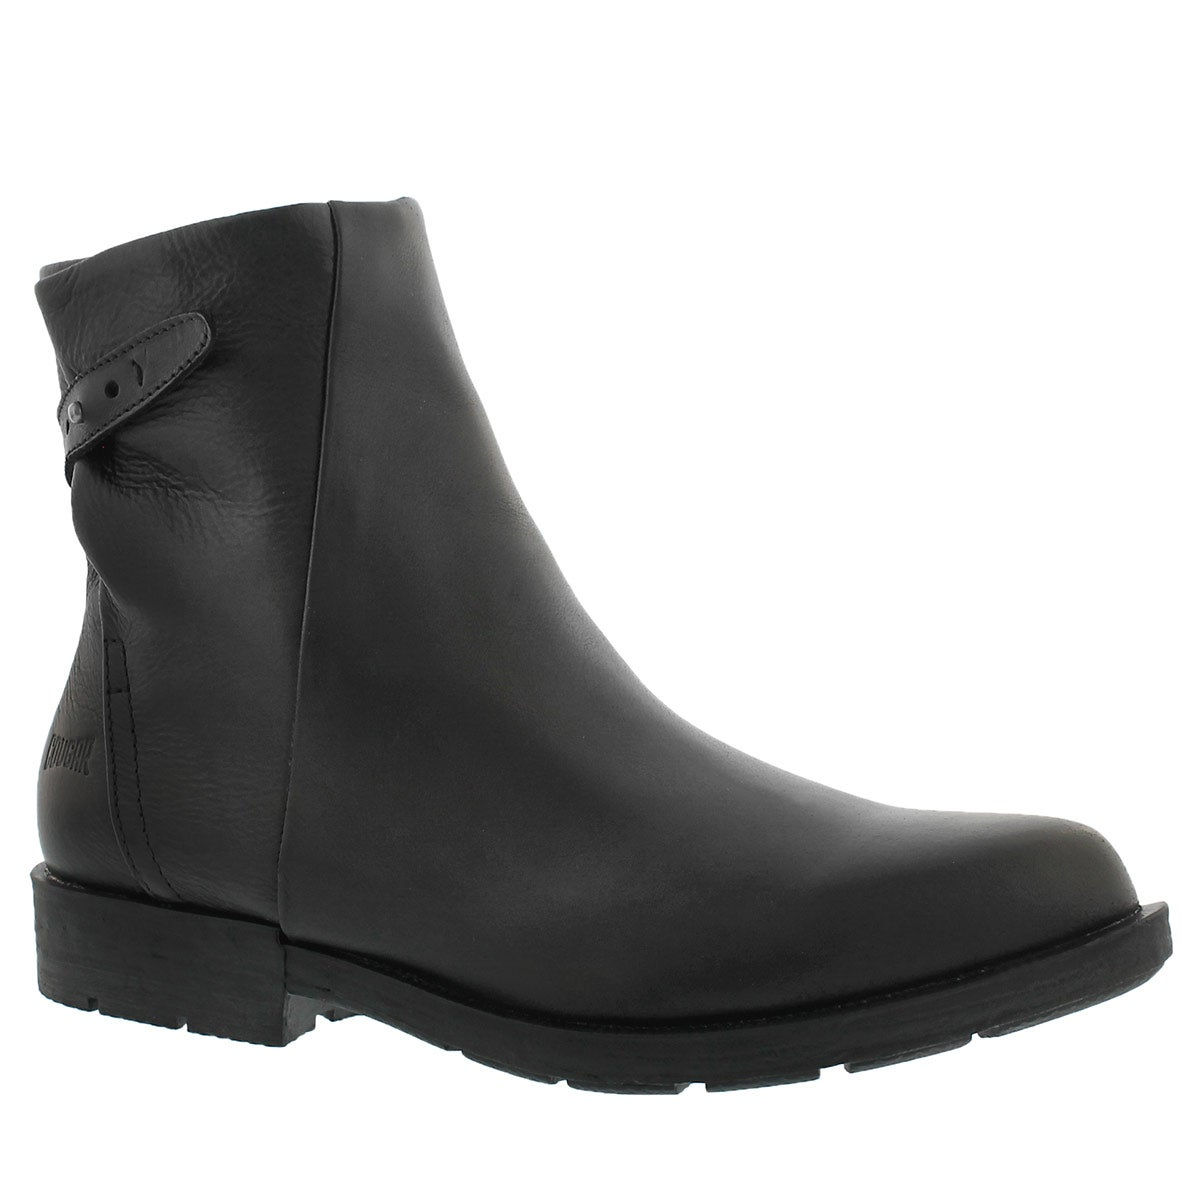 Lds Yazoo black wtpf ankle boot